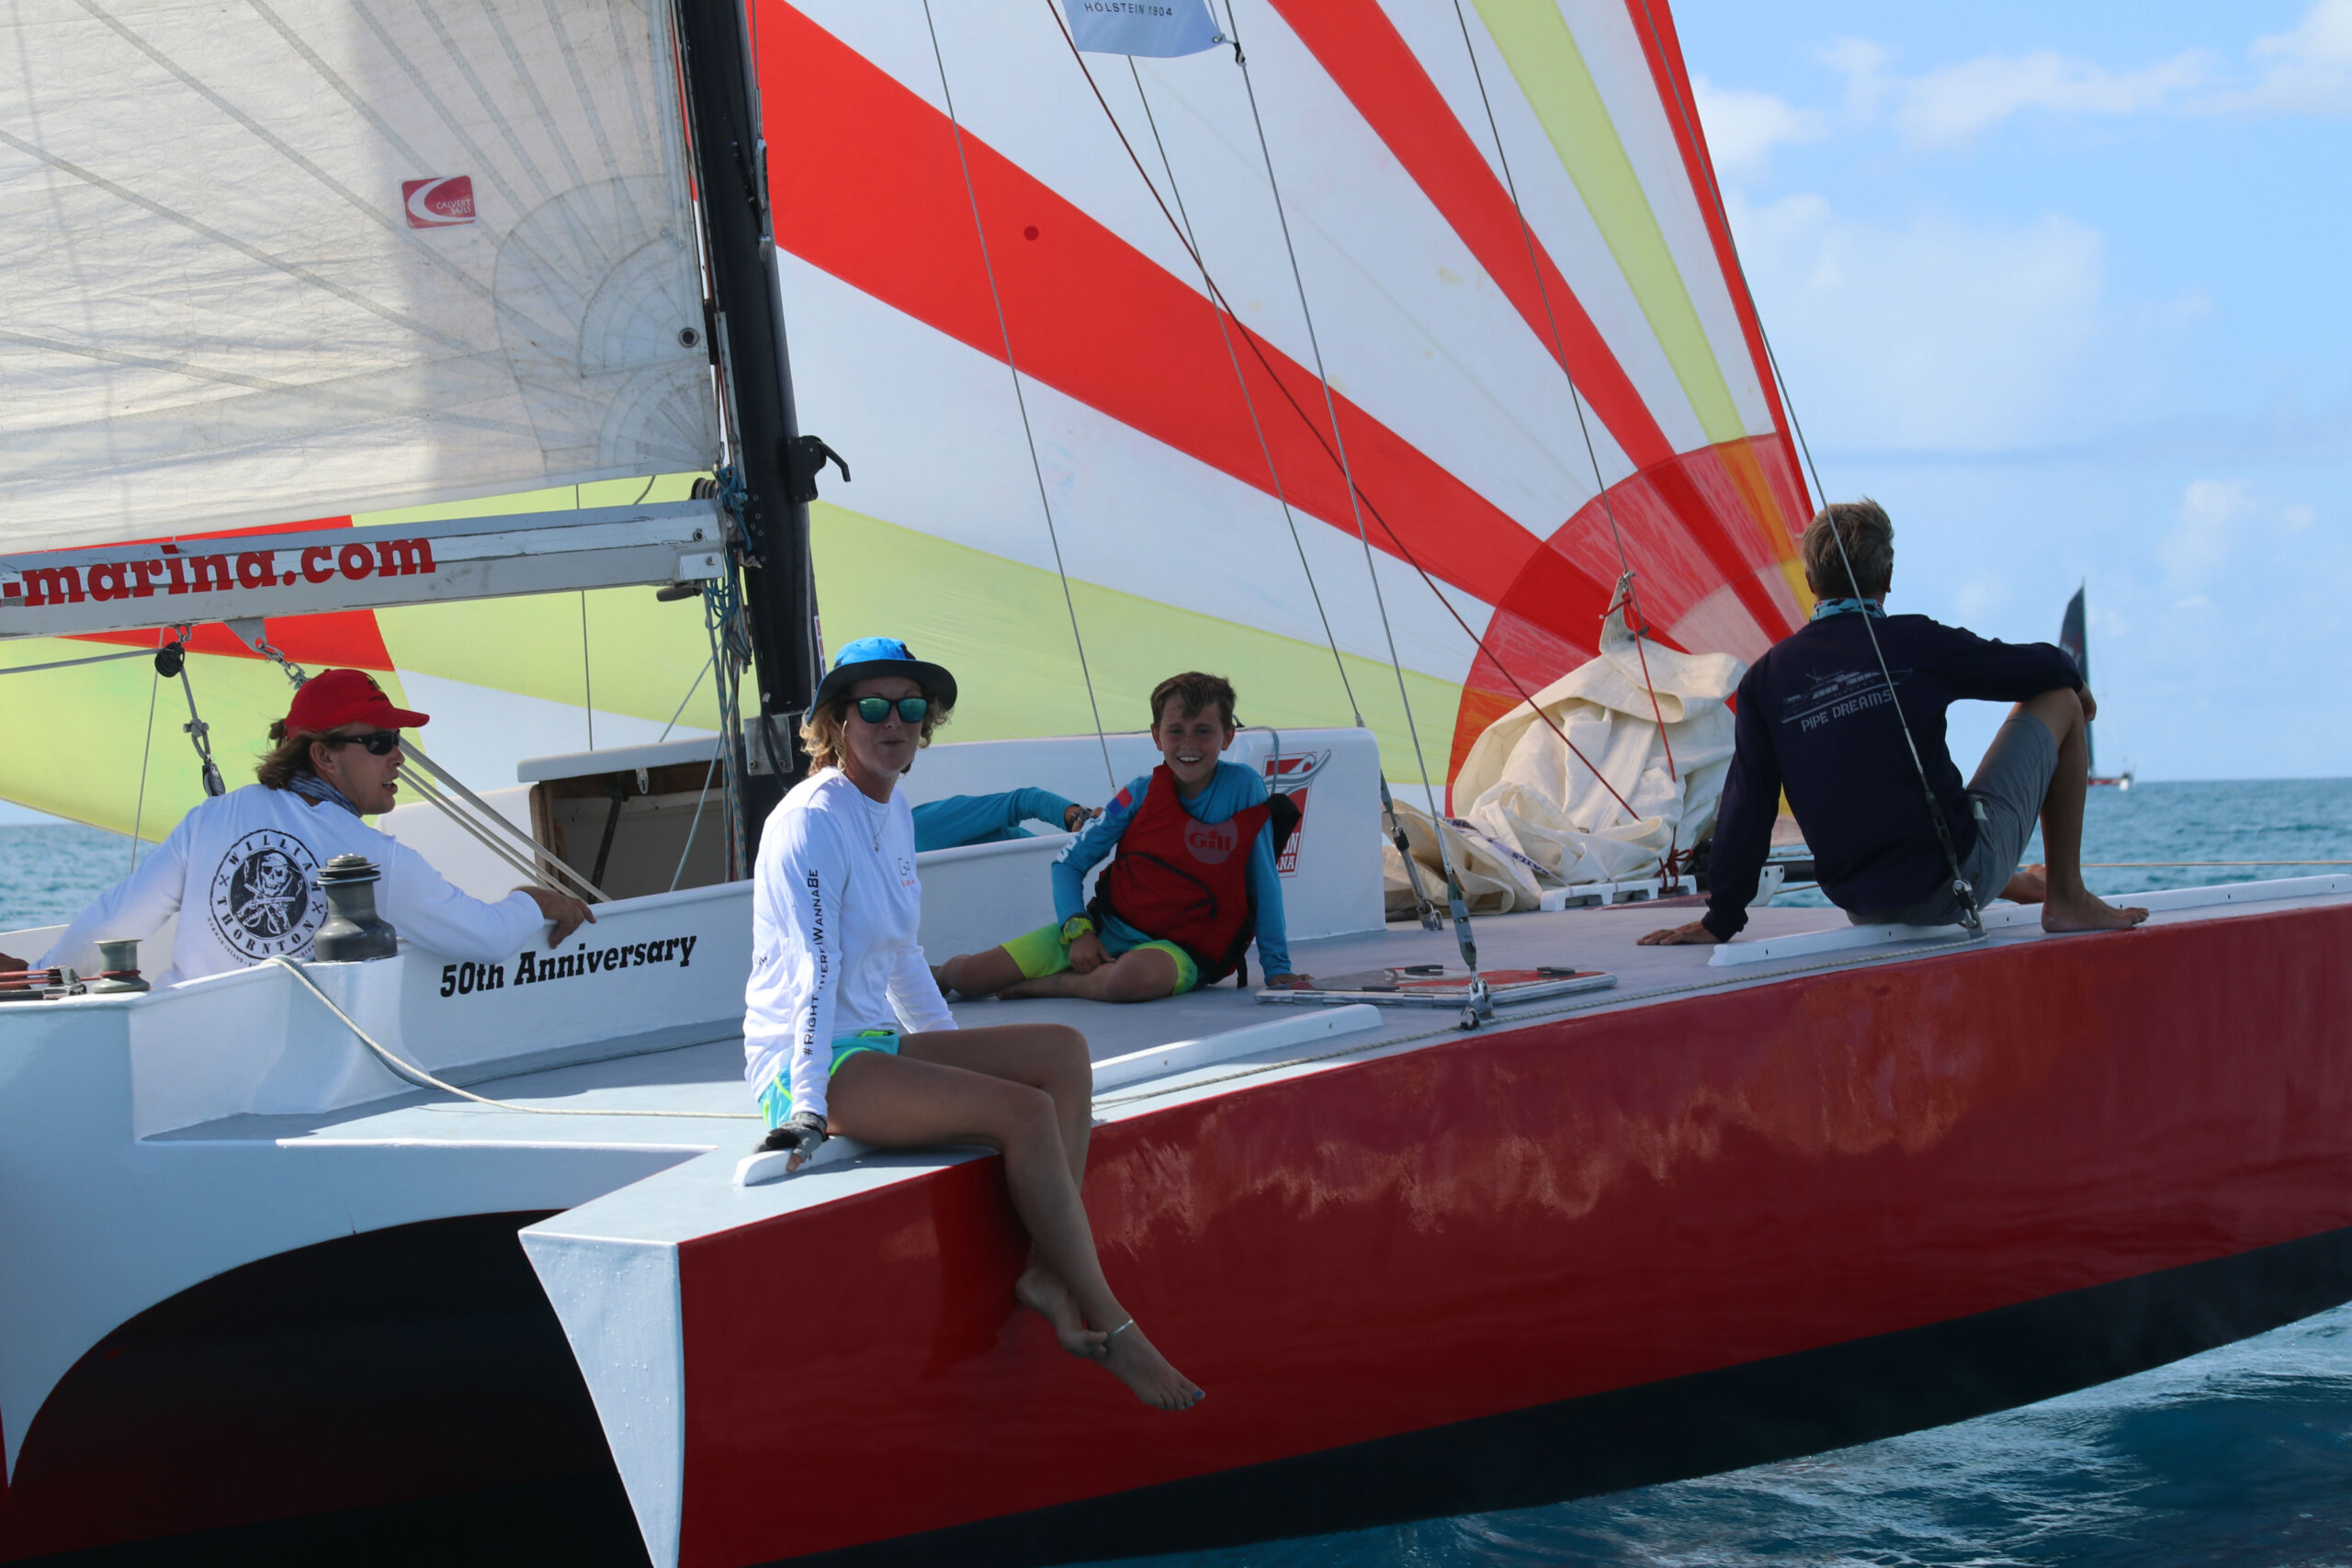 Image courtesy of the Caribbean Multihull Challenge